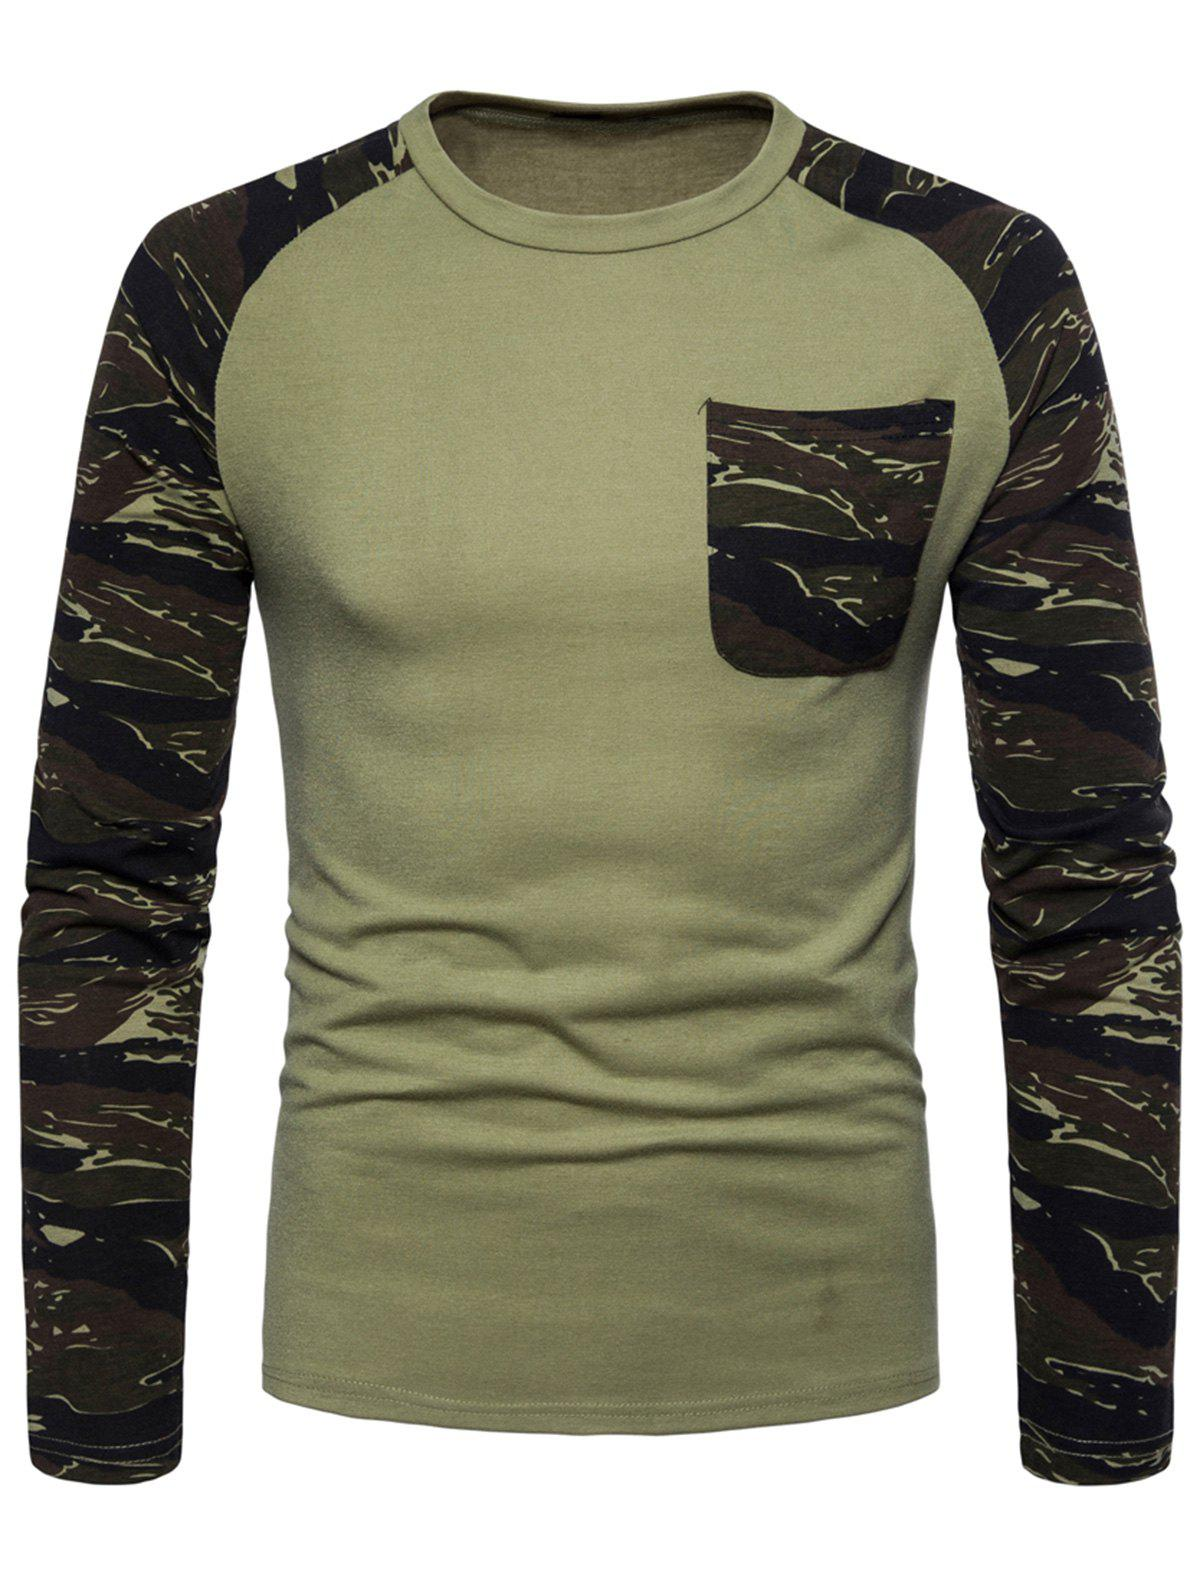 Raglan Sleeve Camouflage T-shirt - GREEN 2XL